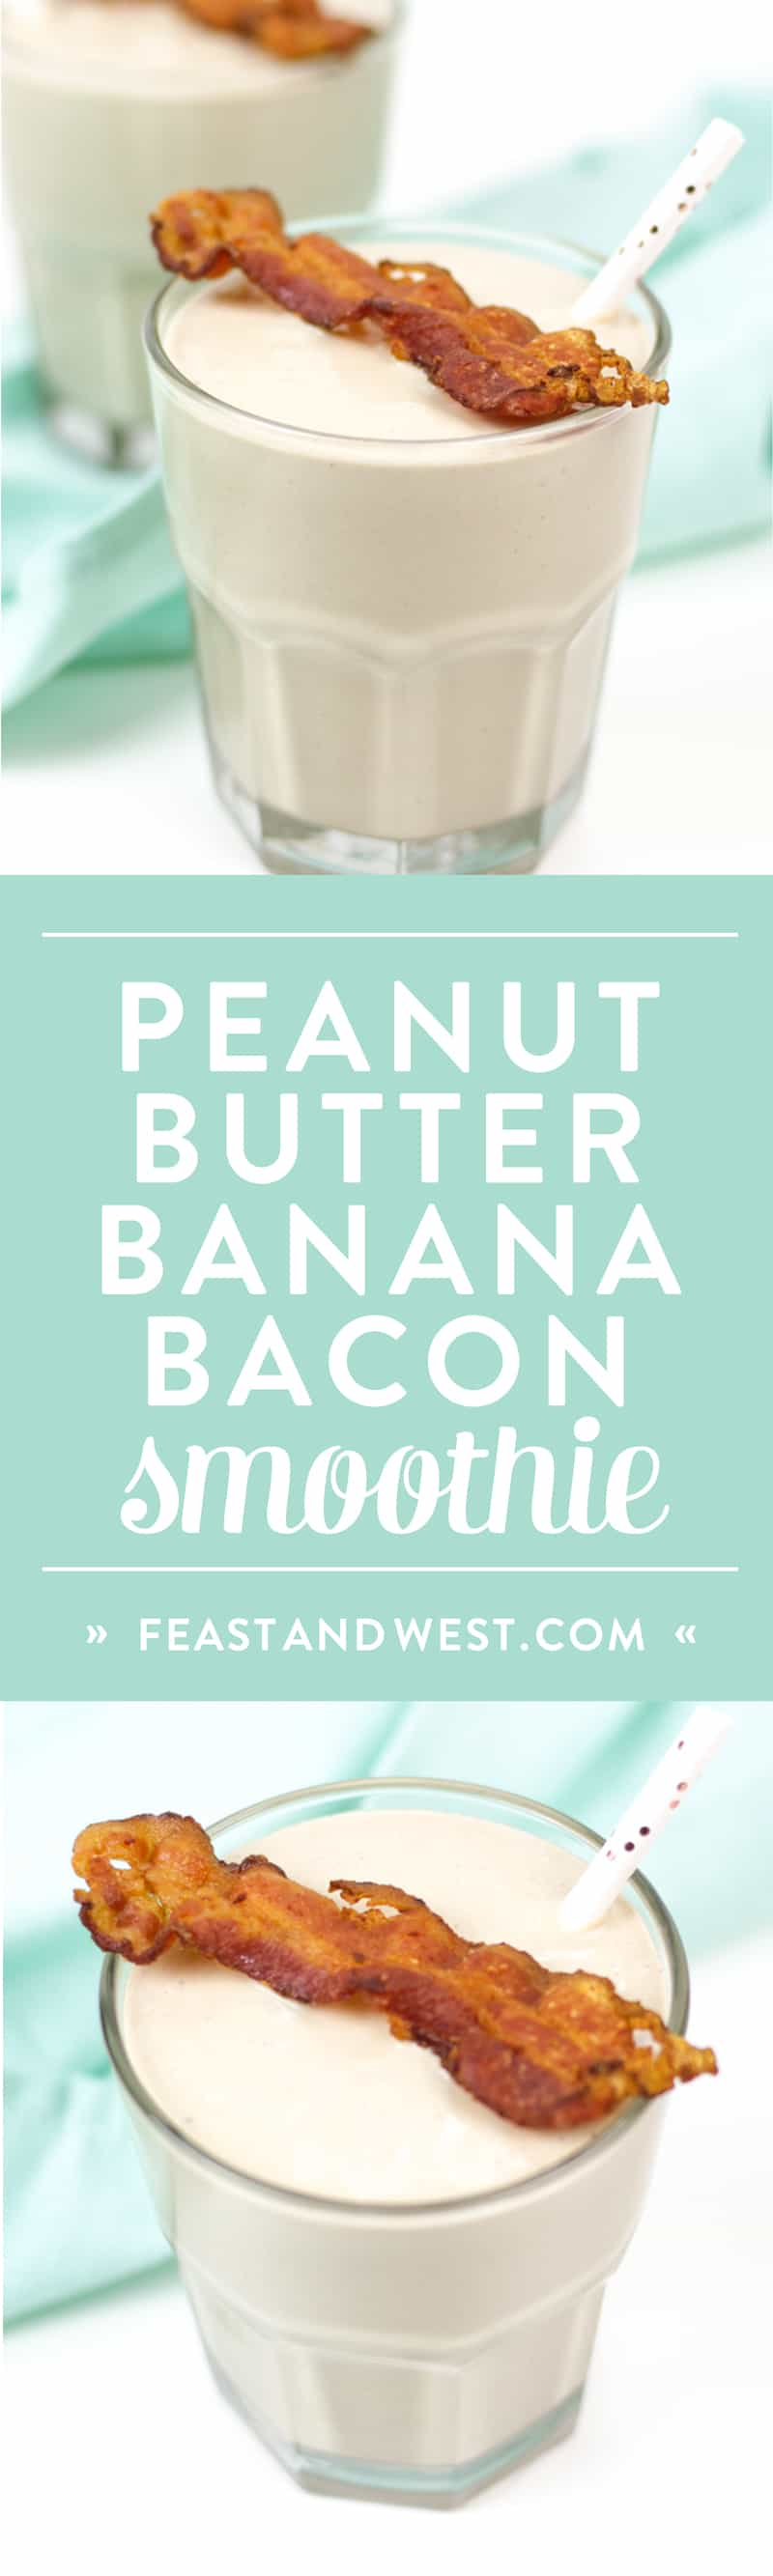 Peanut Butter Banana Bacon Elvis Smoothie